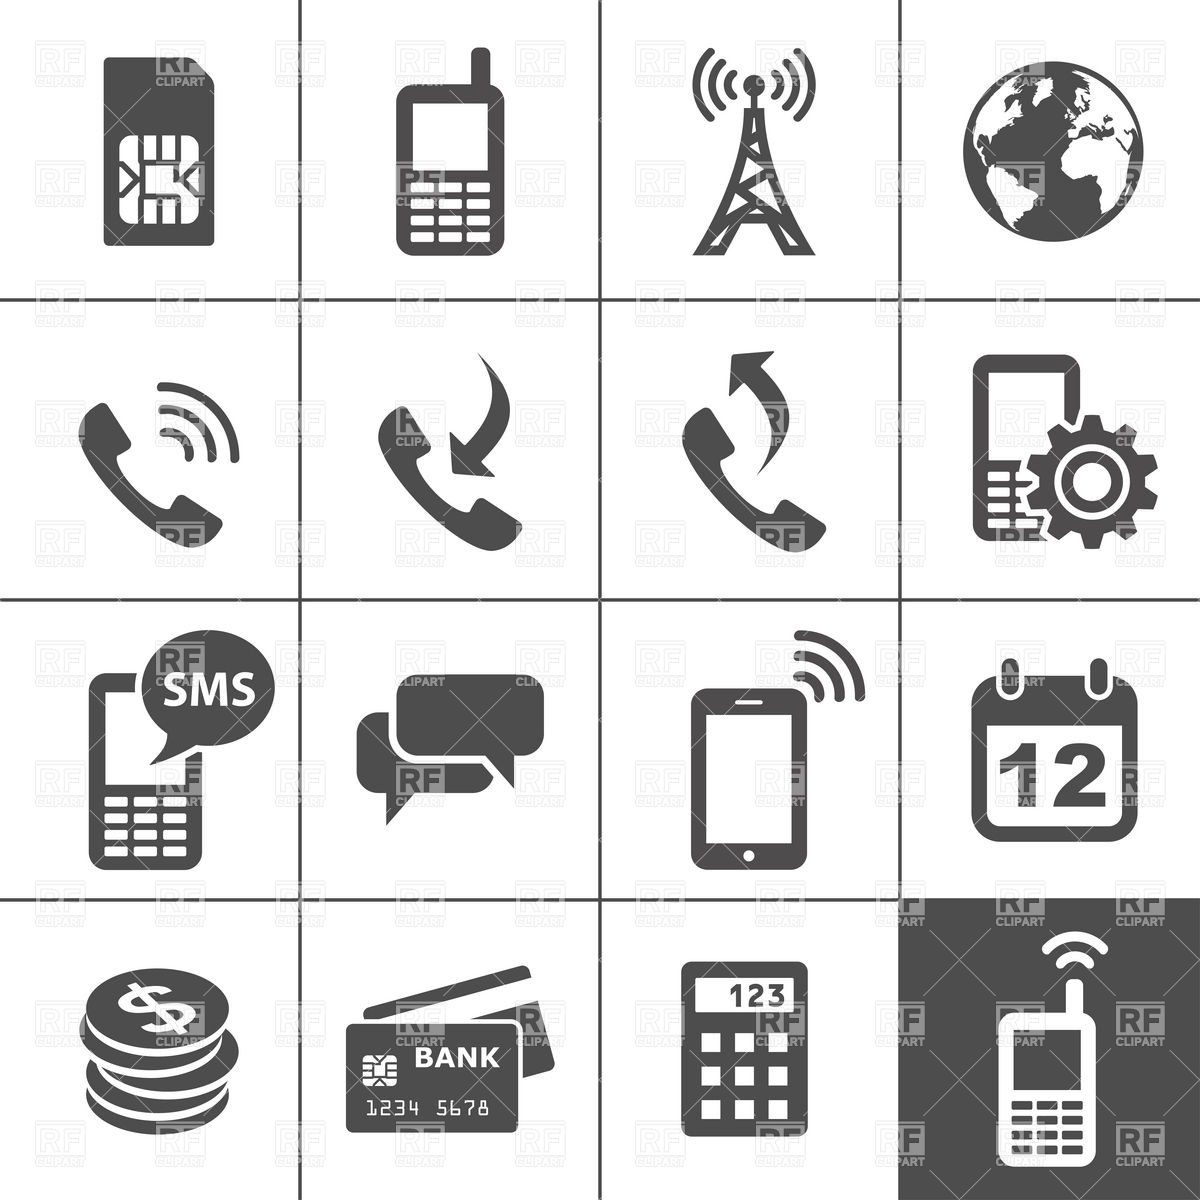 Mobile Icon Vector Free Download